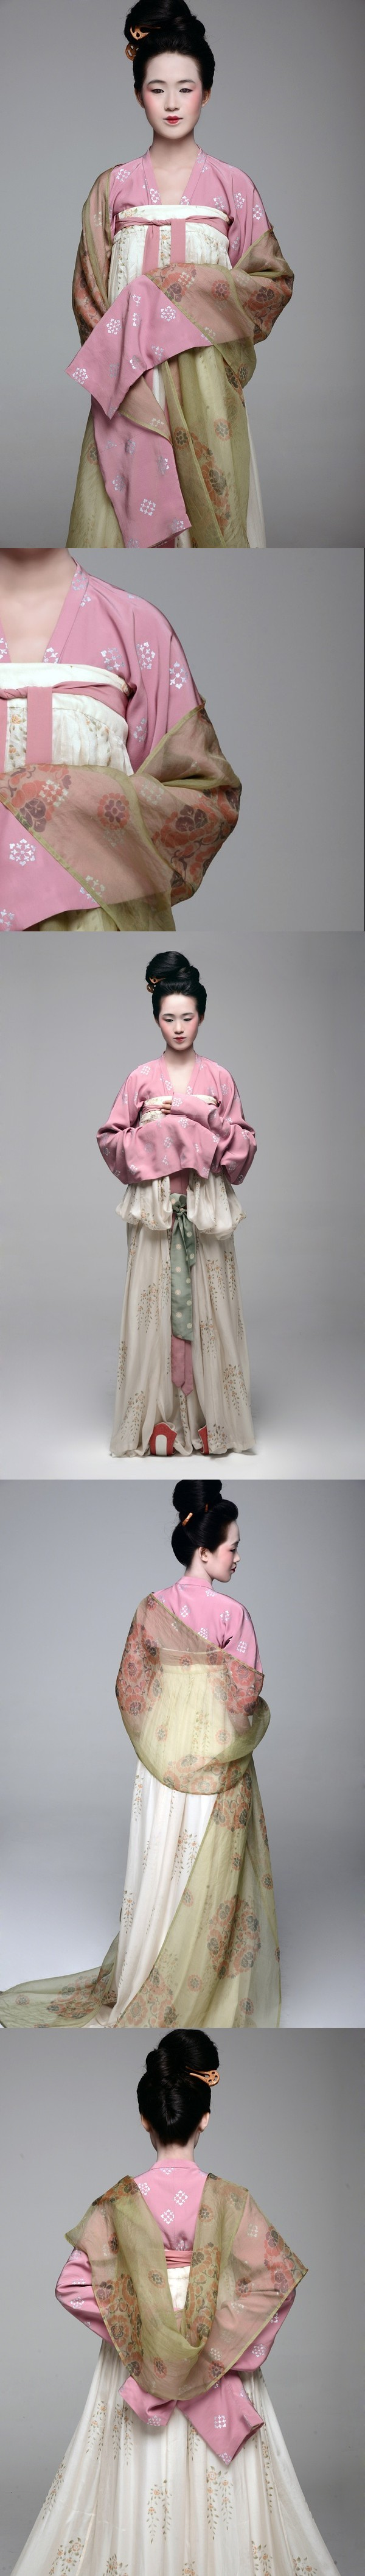 Chinese Hanfu - very Tang! | ETWGP: 8th Century Tang Dynasty China ...